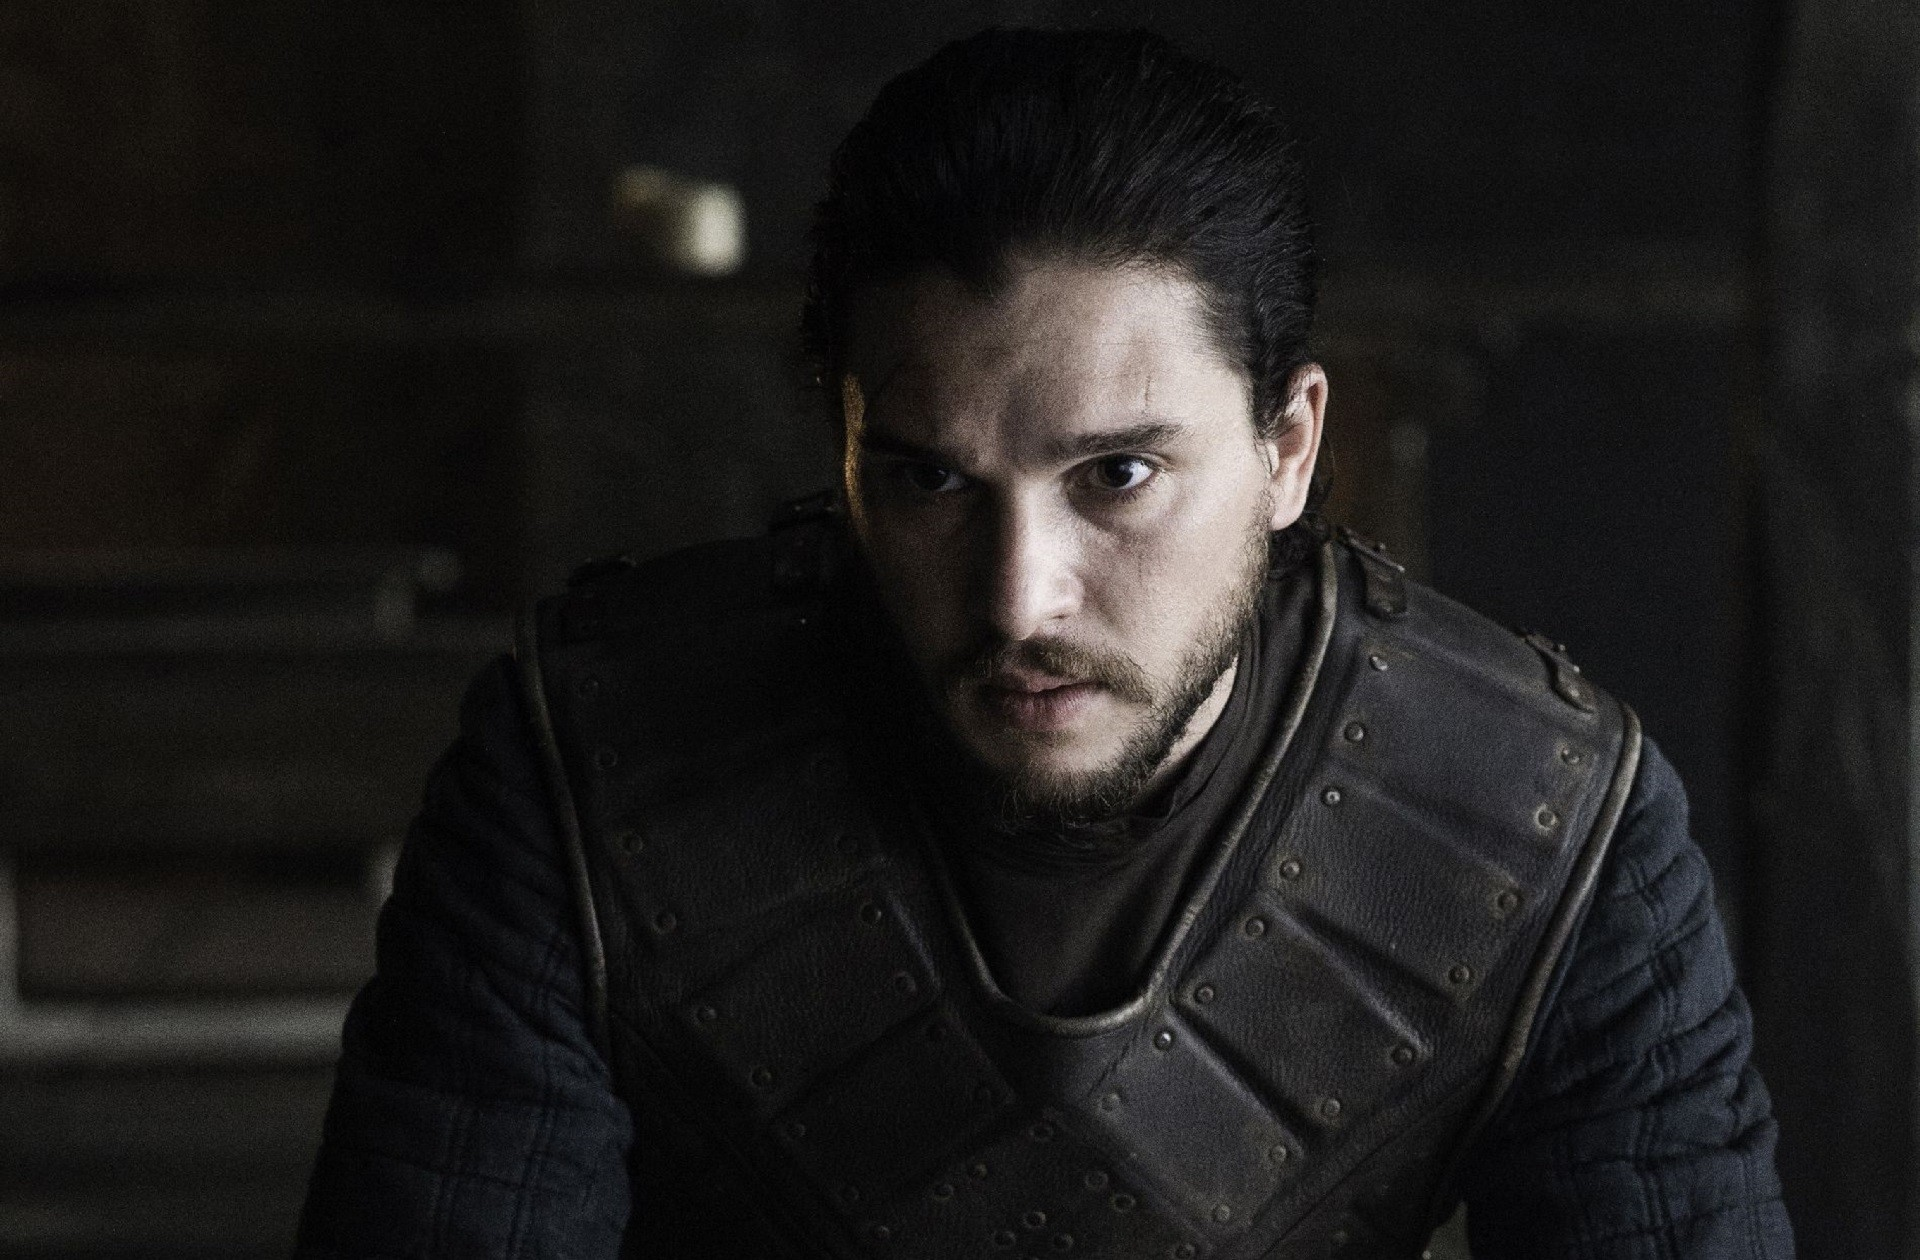 2560x1440 TV Series Jon Snow Wallpaper